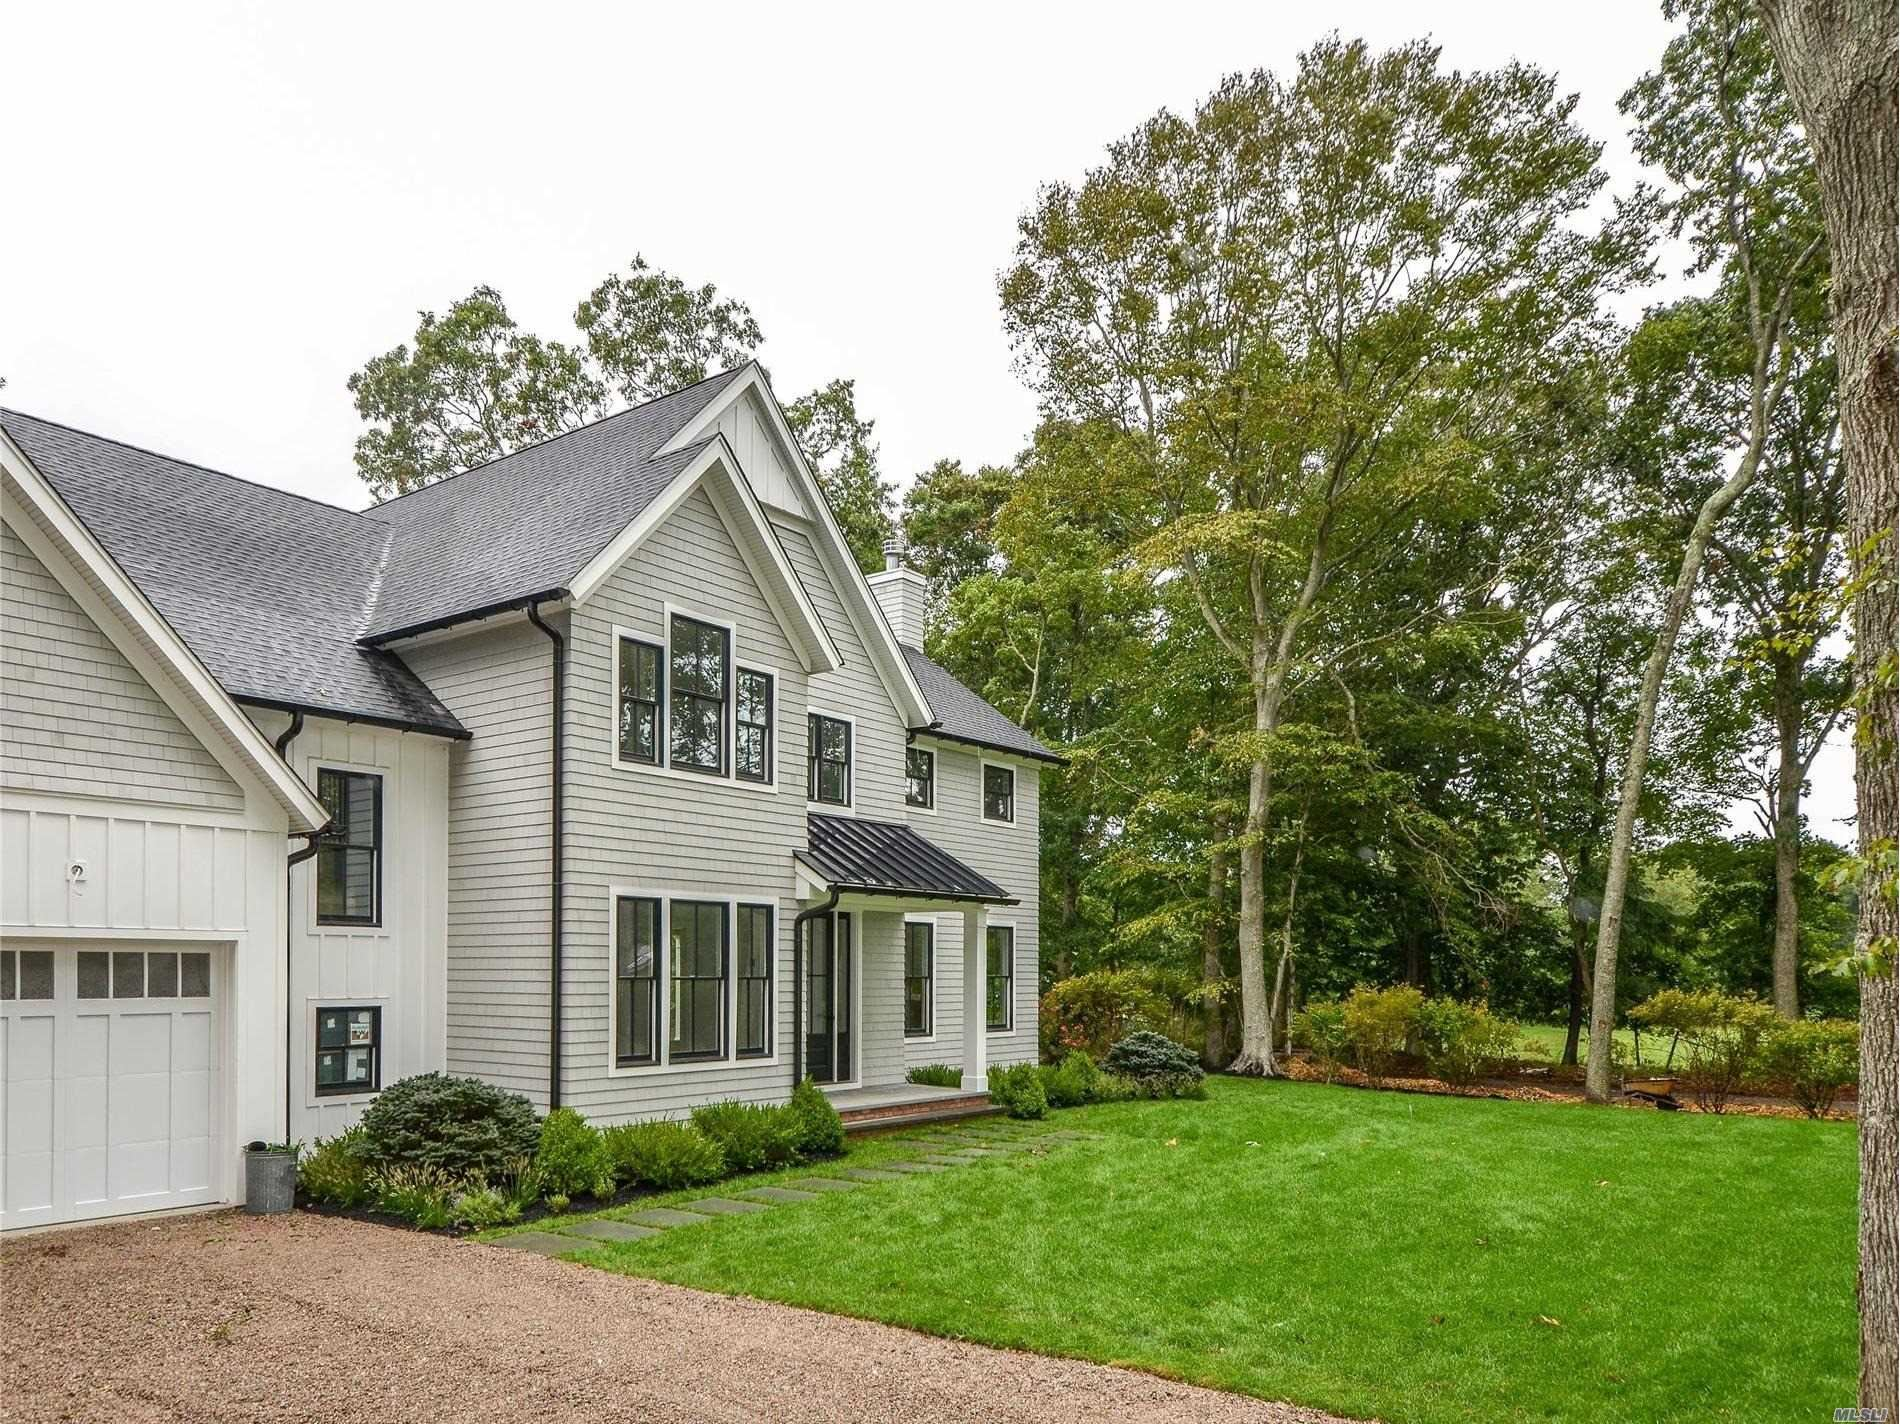 702 Wiggins Ln, Greenport, NY 11944 - MLS#: 3222493